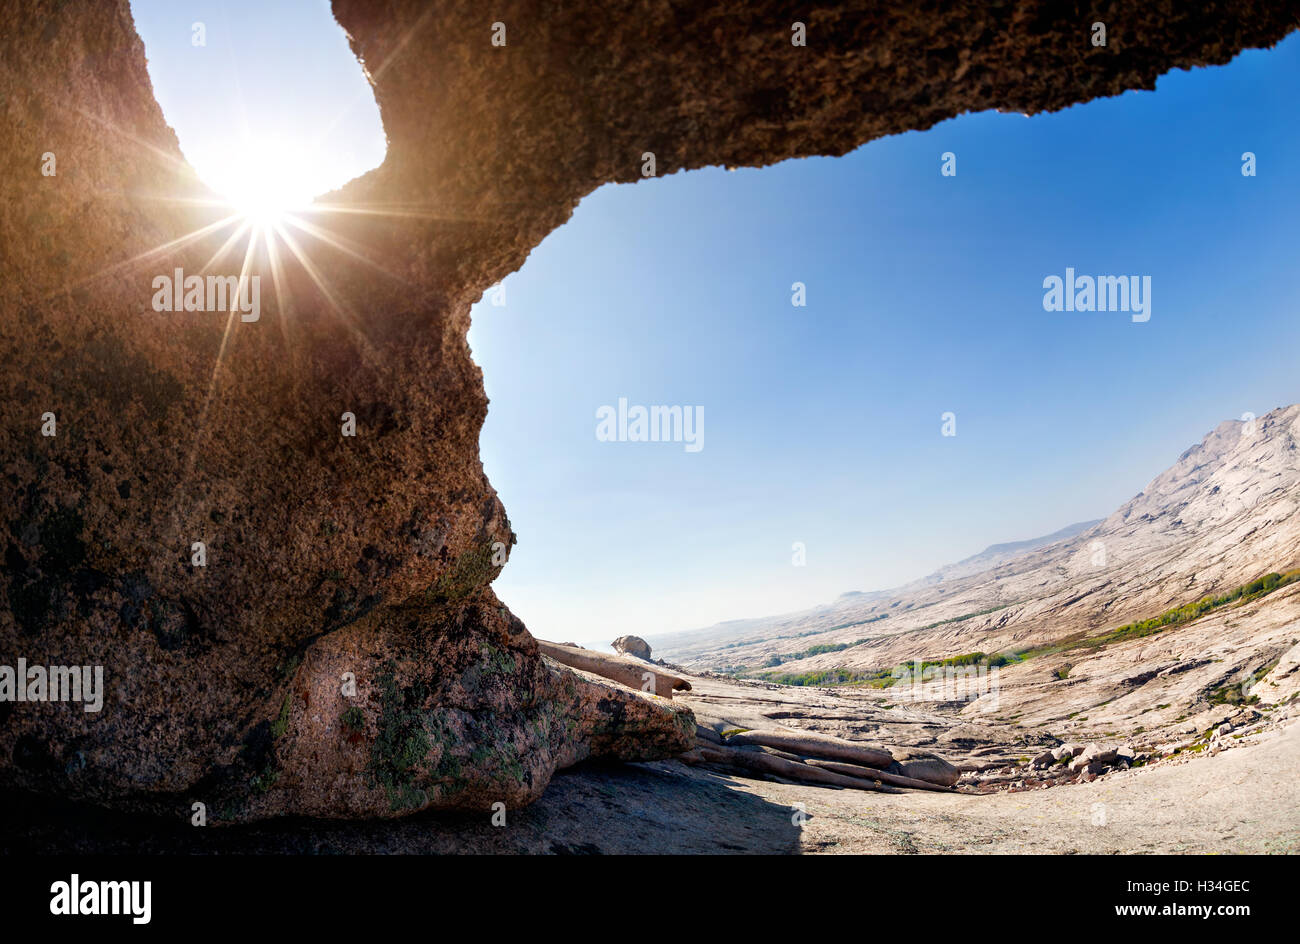 Cave in the Desert Mountains with sun at the hot day in eastern Kazakhstan - Stock Image